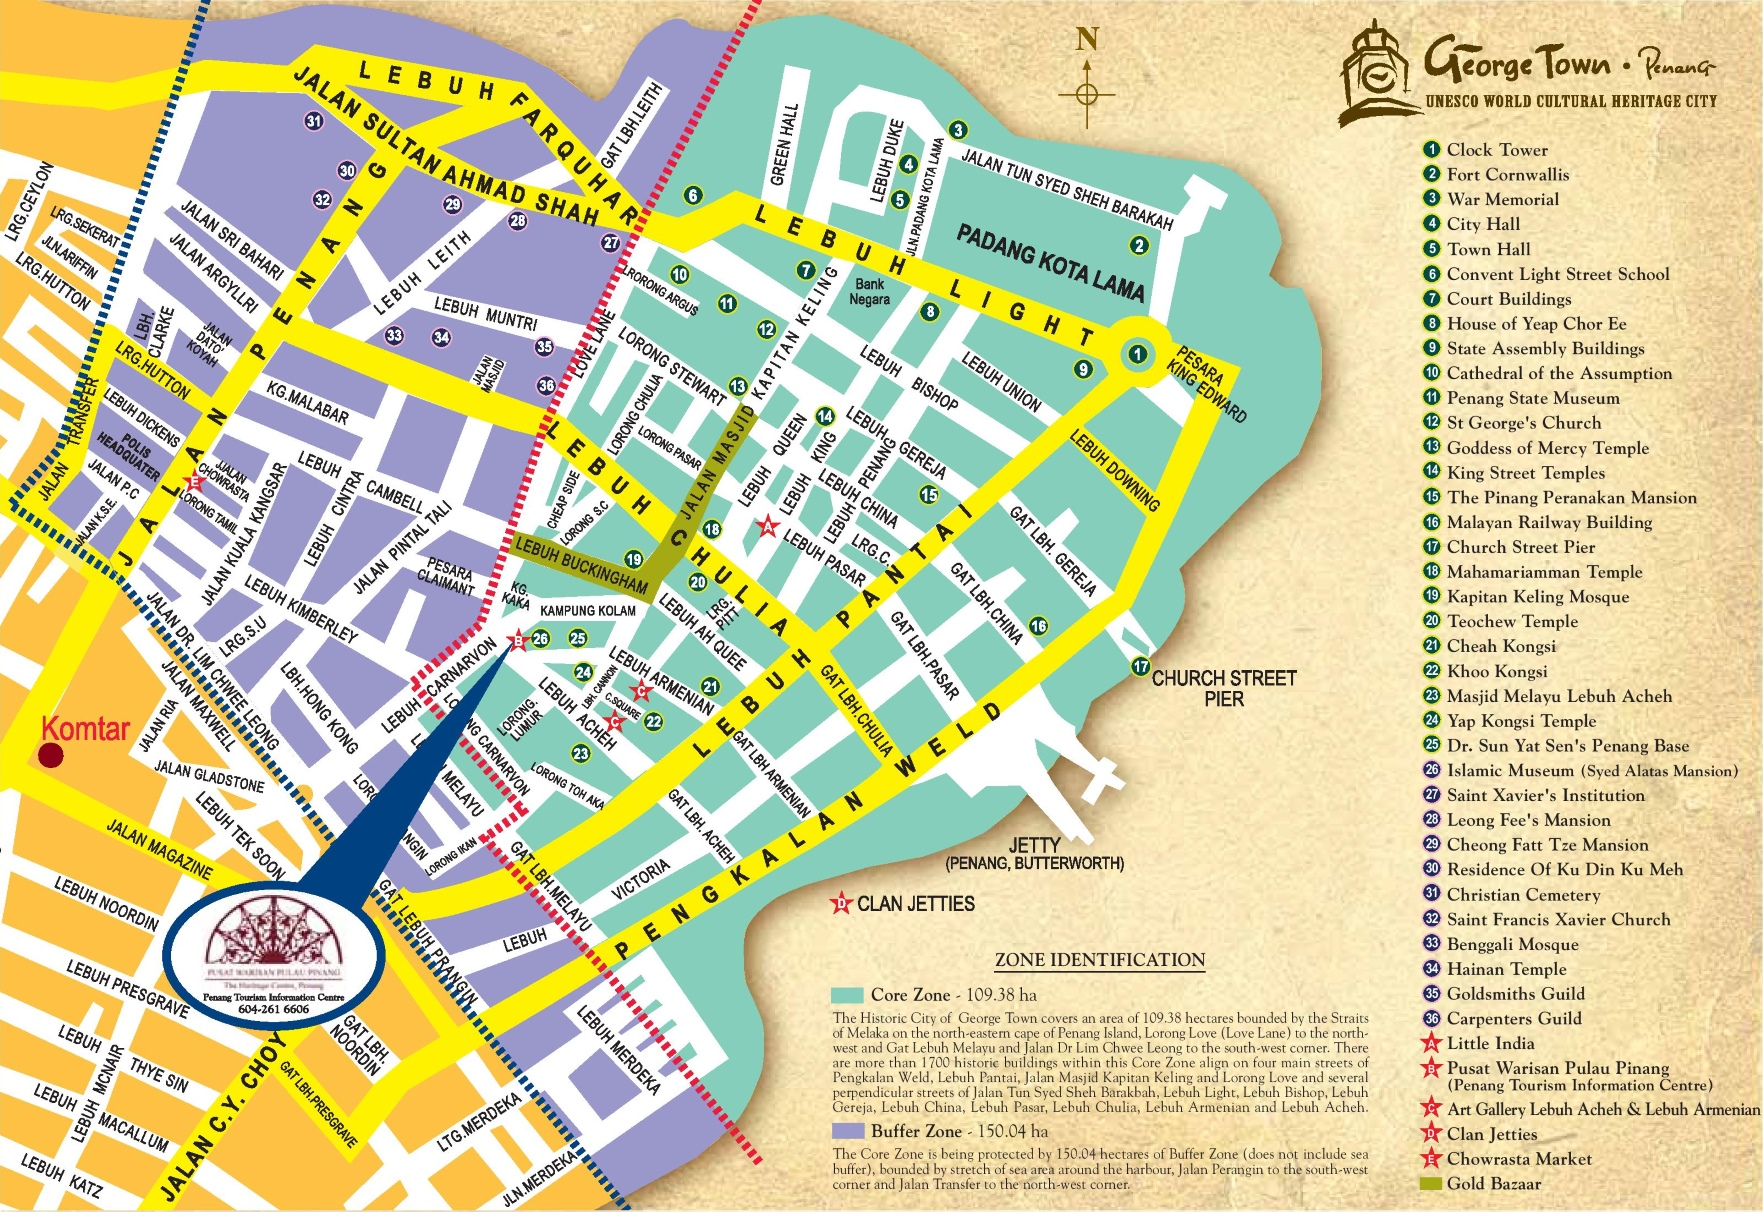 George Town City Center Map